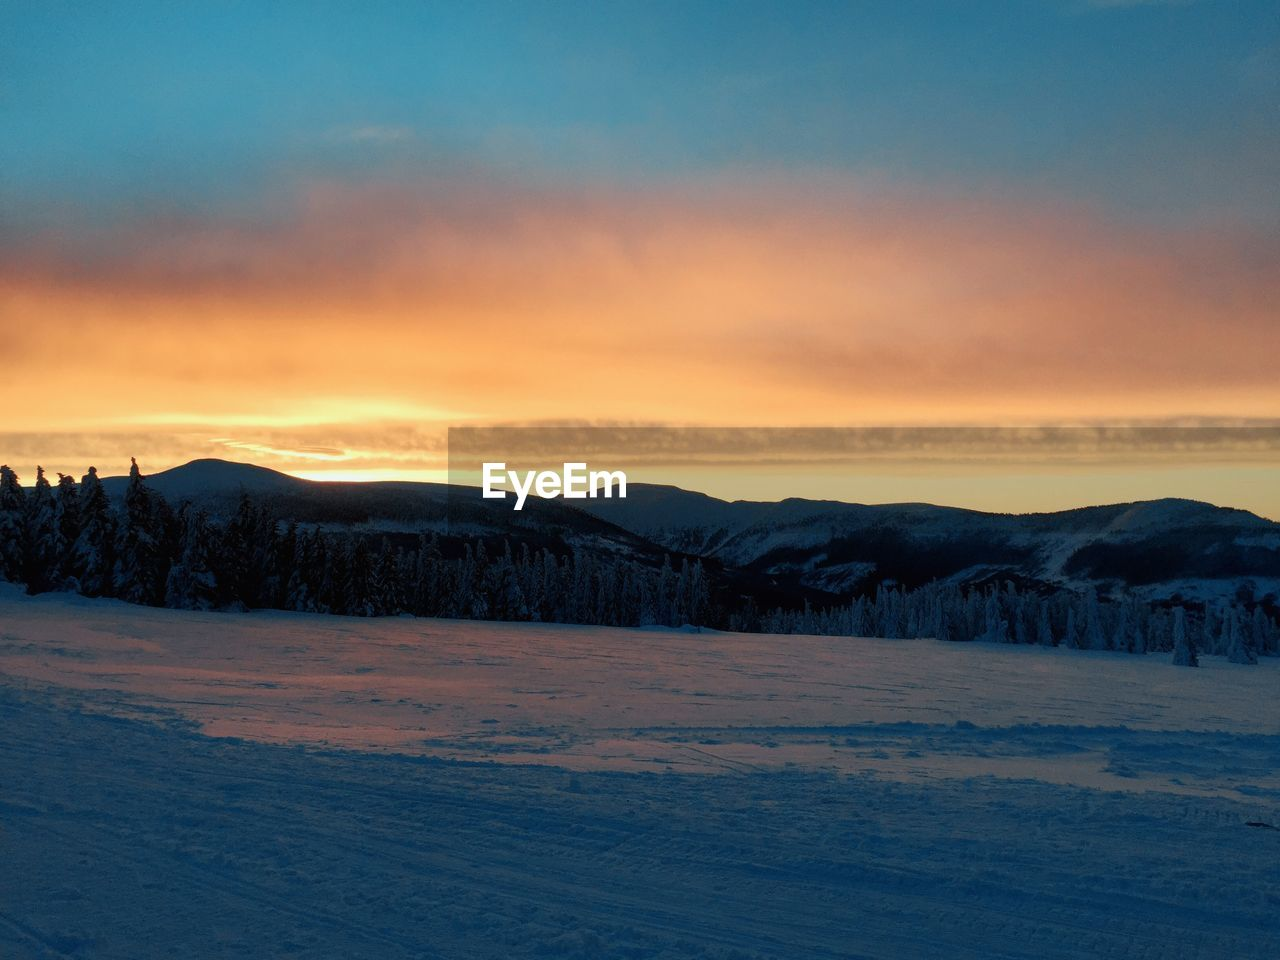 snow, cold temperature, winter, sunset, beauty in nature, scenics - nature, sky, tranquil scene, tranquility, cloud - sky, environment, landscape, mountain, nature, no people, orange color, non-urban scene, idyllic, land, outdoors, snowcapped mountain